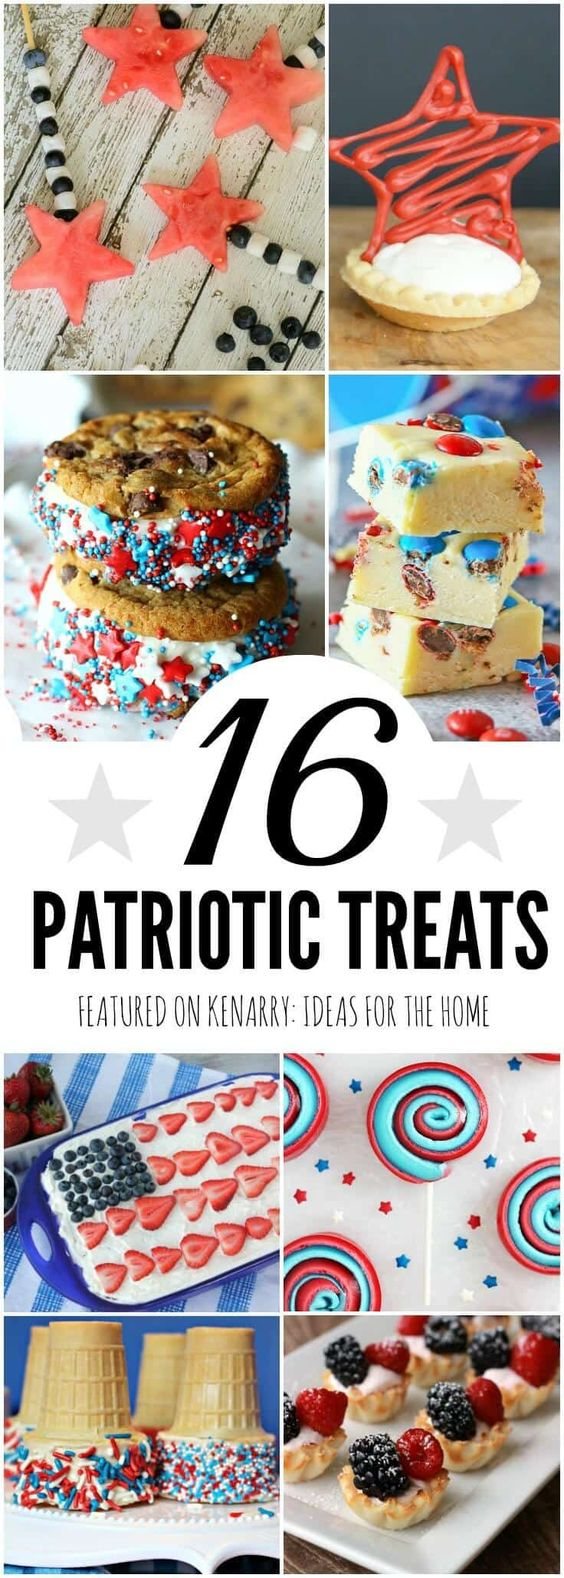 Patriotic Treats: 16 Red, White and Blue Ideas